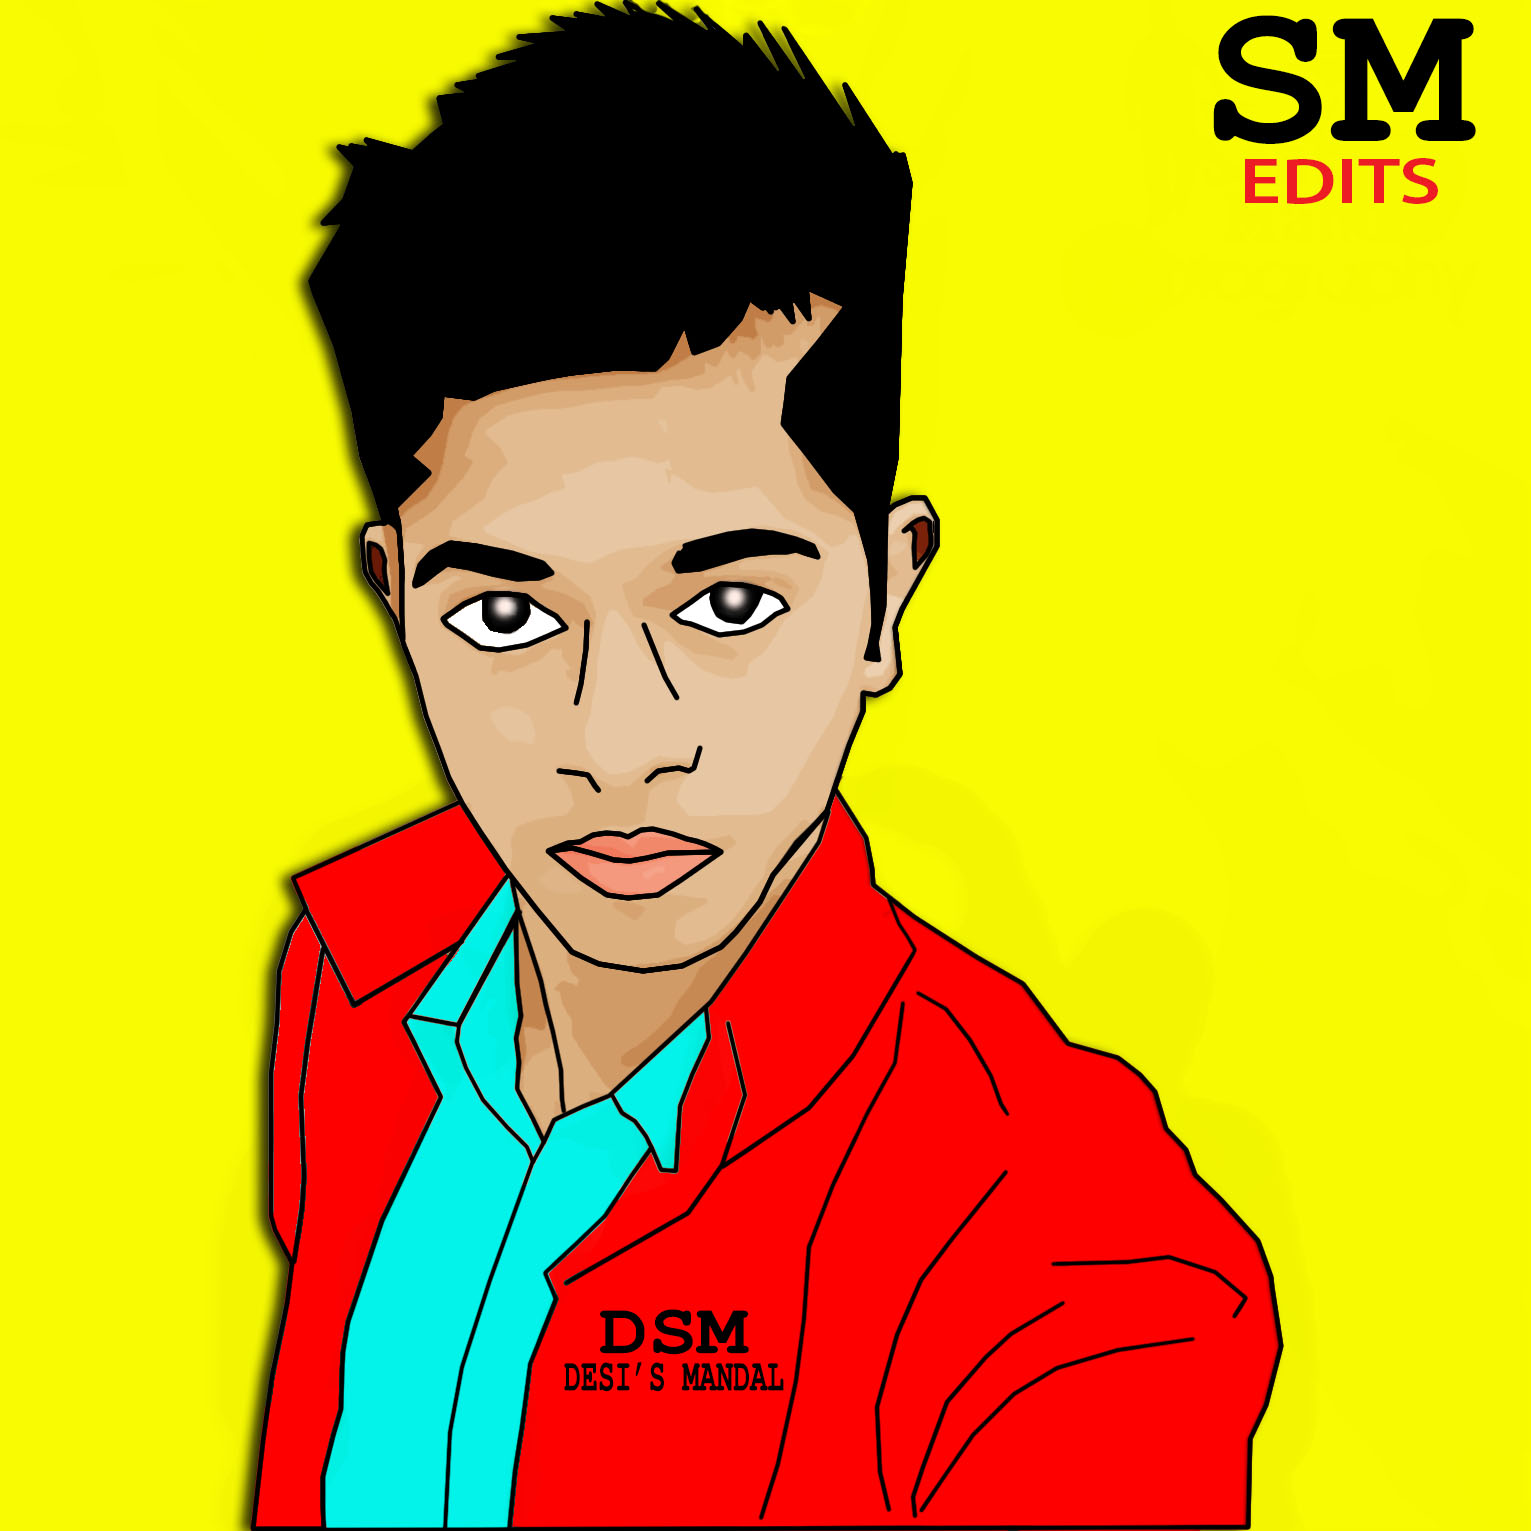 Cartoon Effects In Adobe Photoshop Cs6 Santosh Mandal